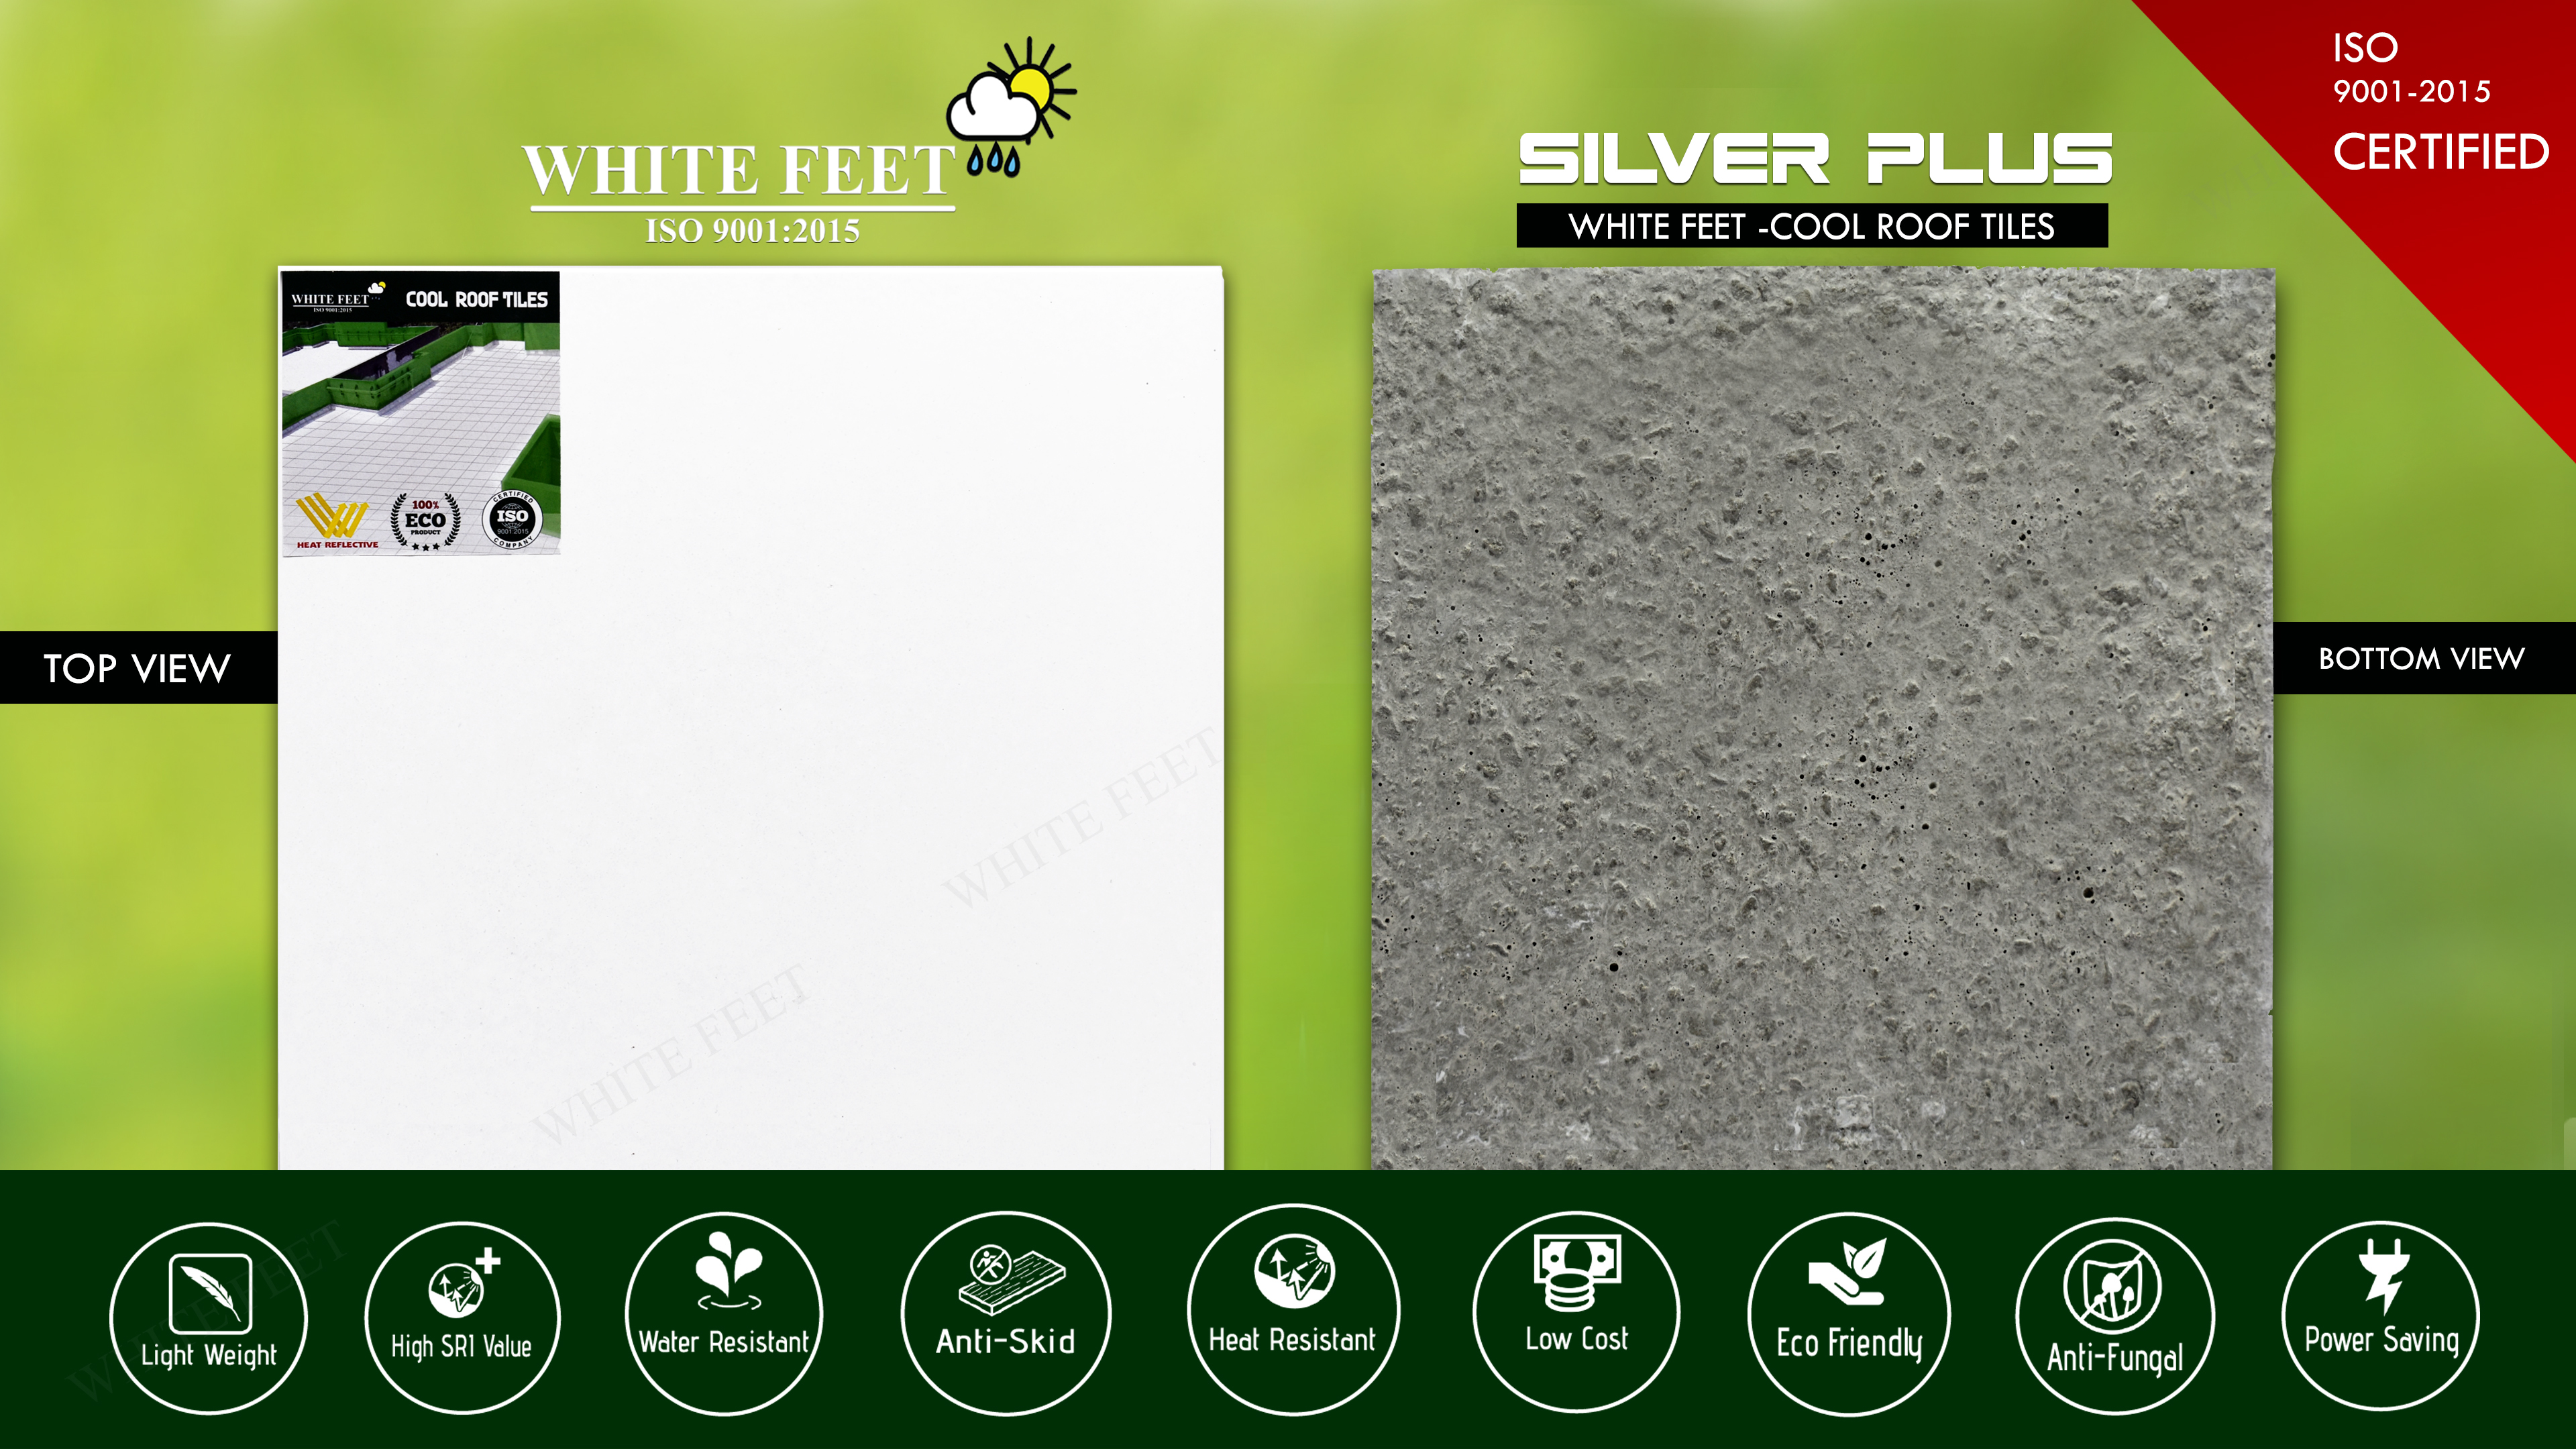 COOLING ROOF TILES WHITEFEET